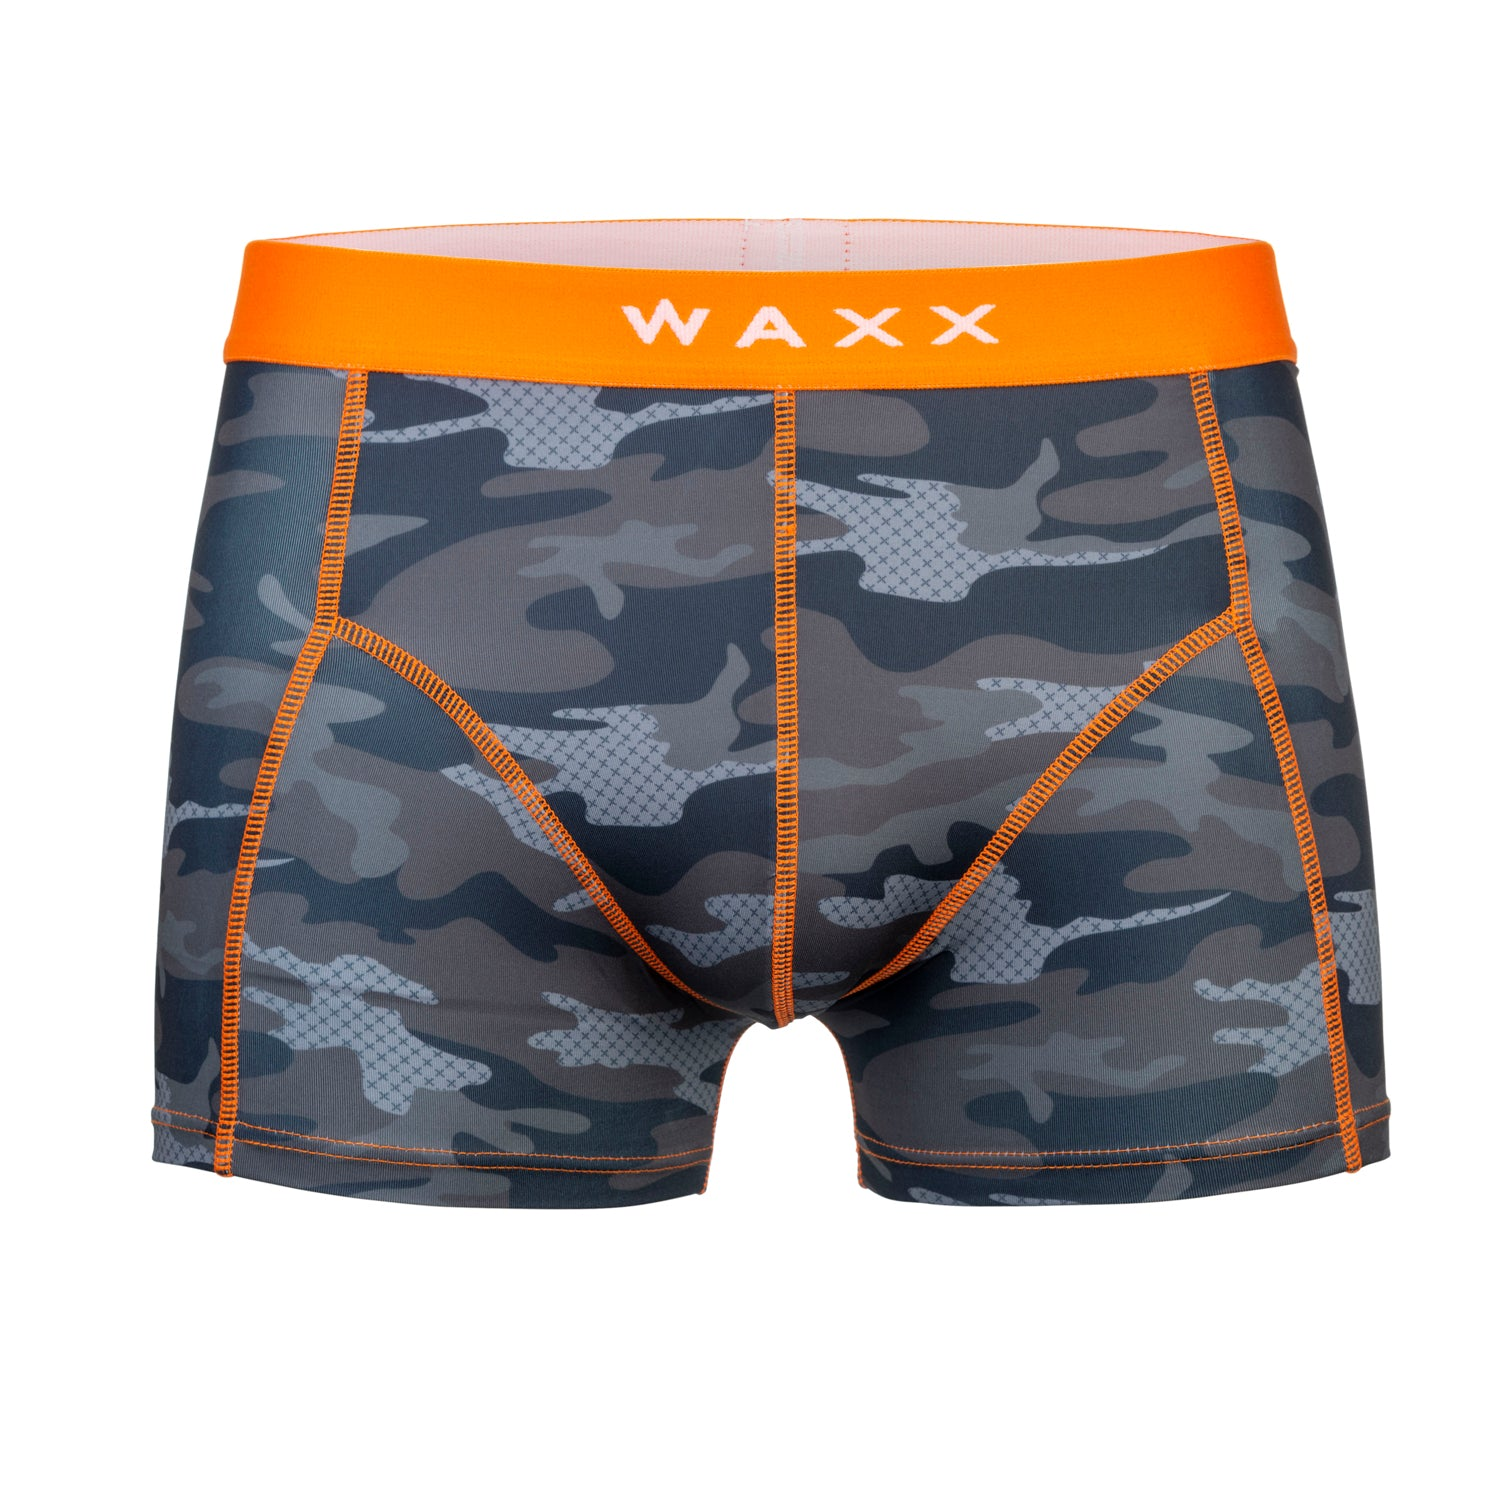 Waxx Men's Trunk Boxer Short Camo